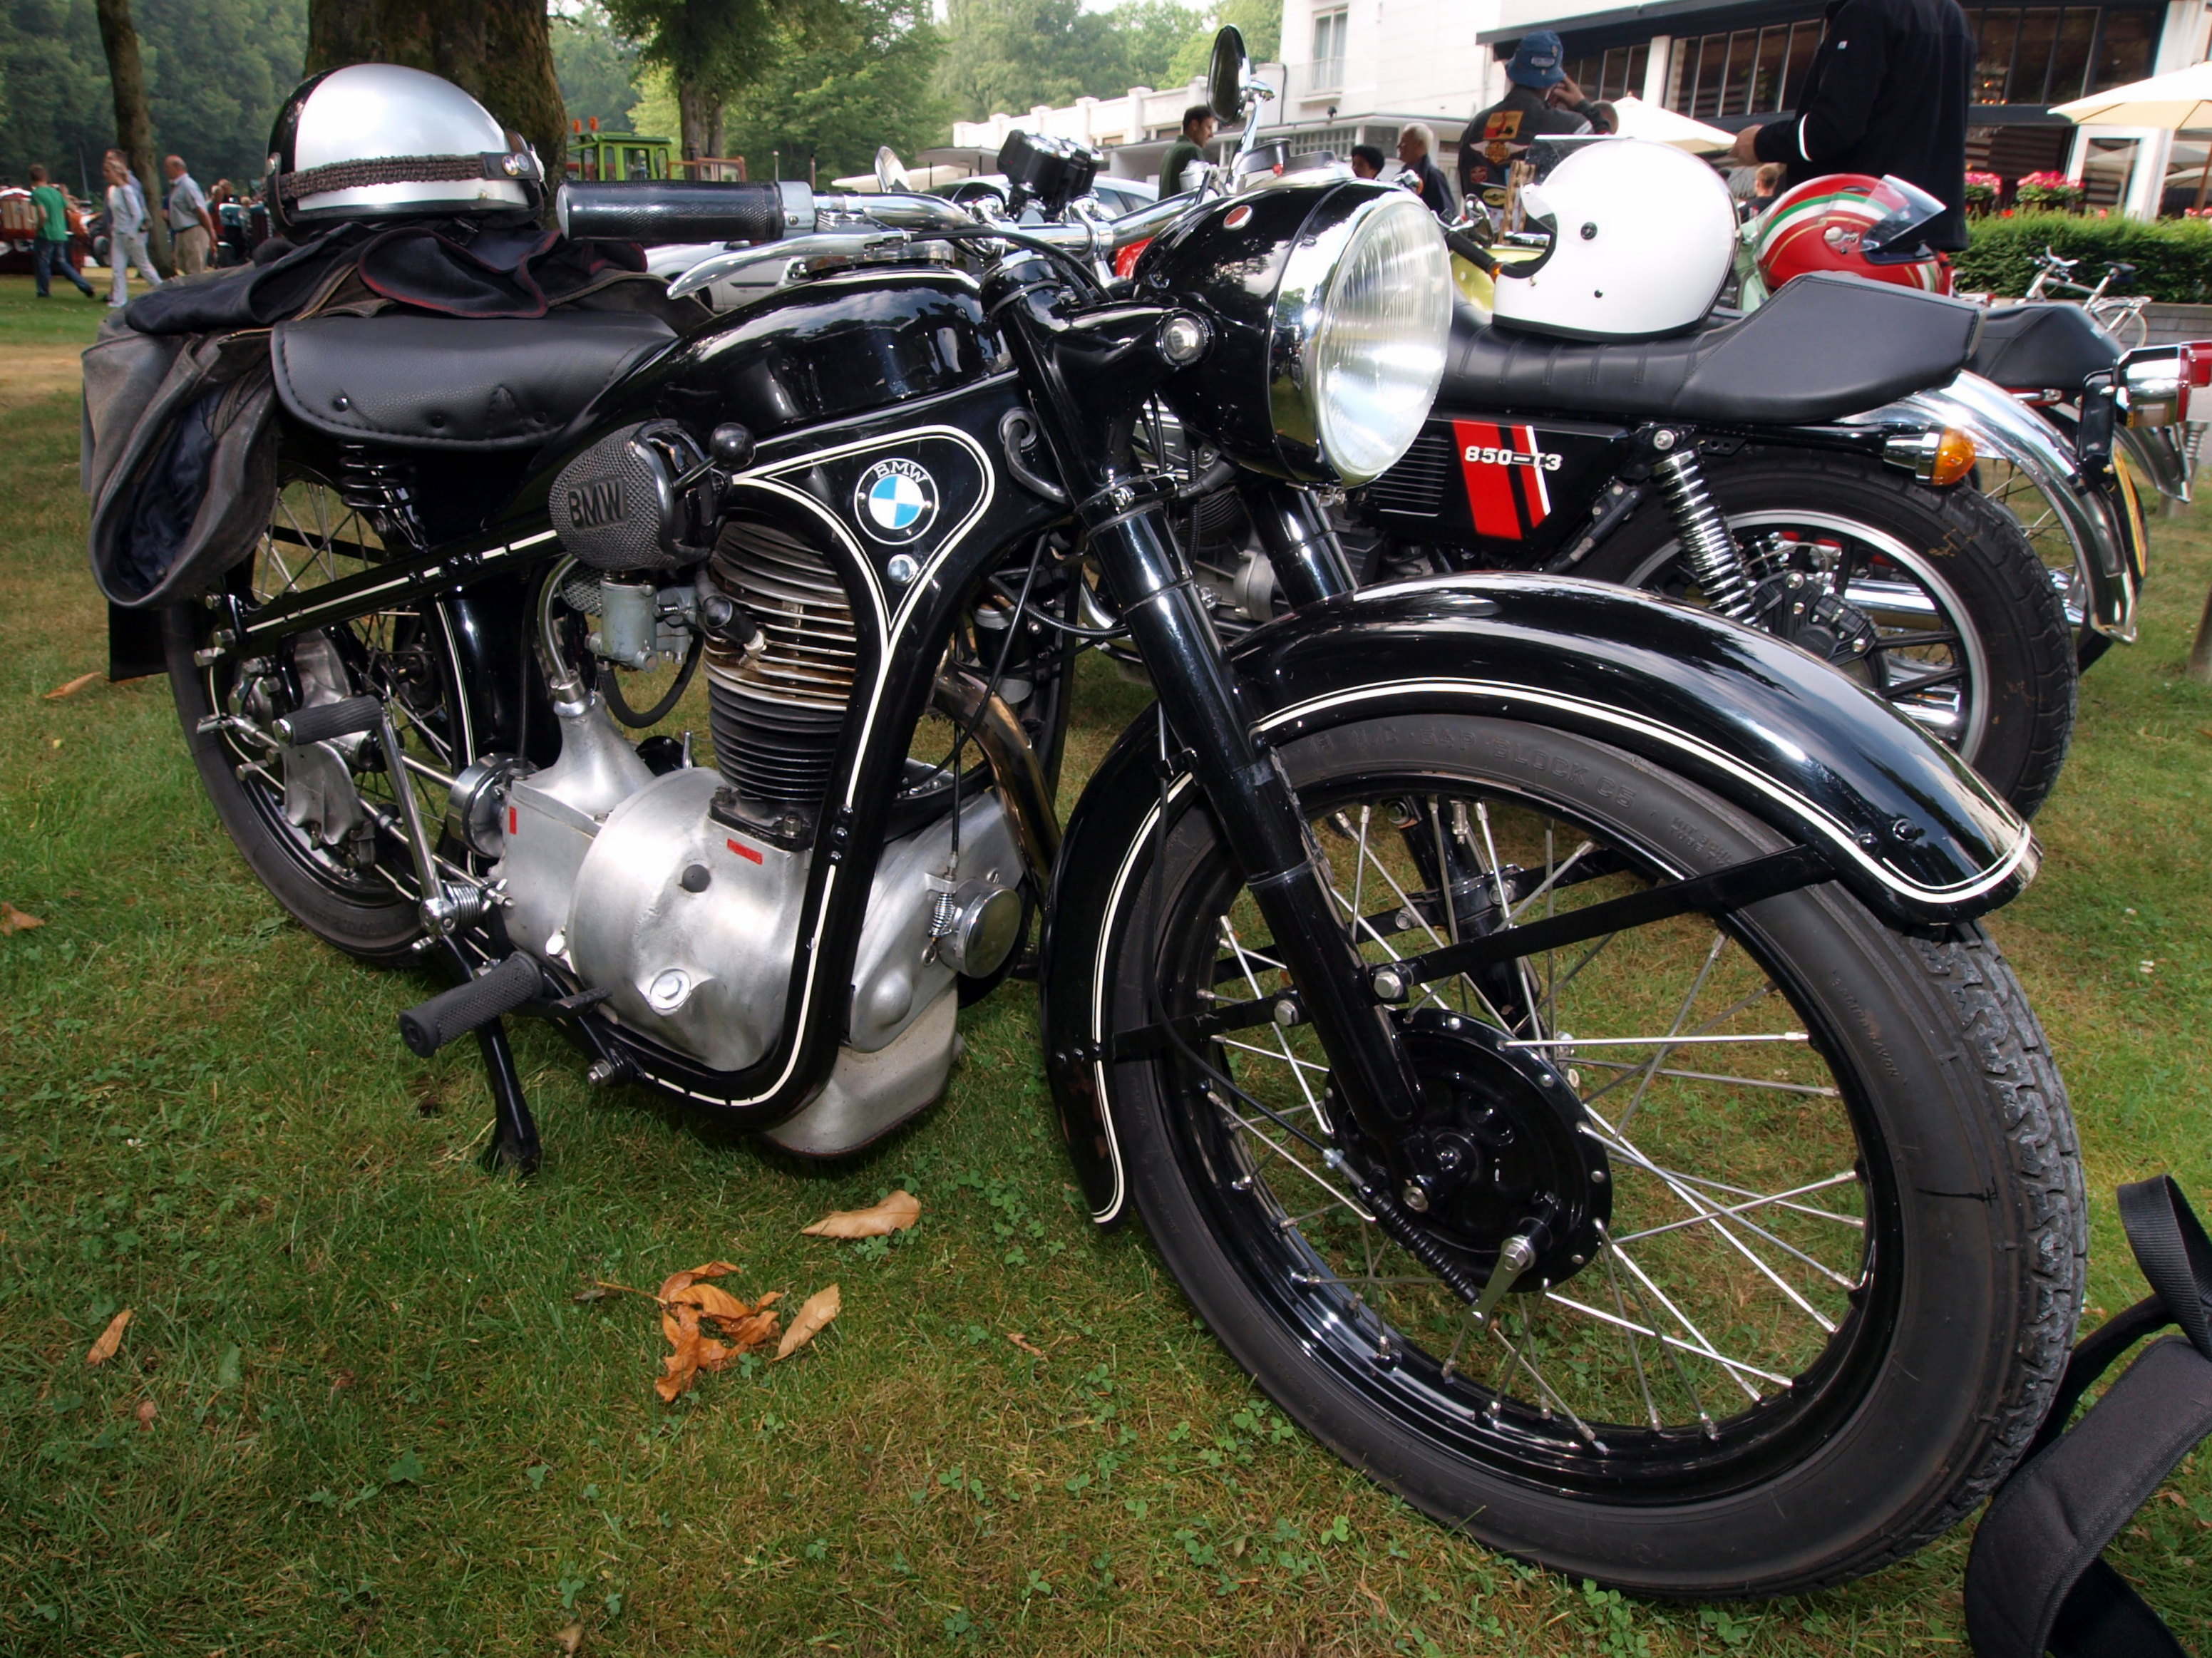 file:old bmw motorcycle at millingen - wikimedia commons